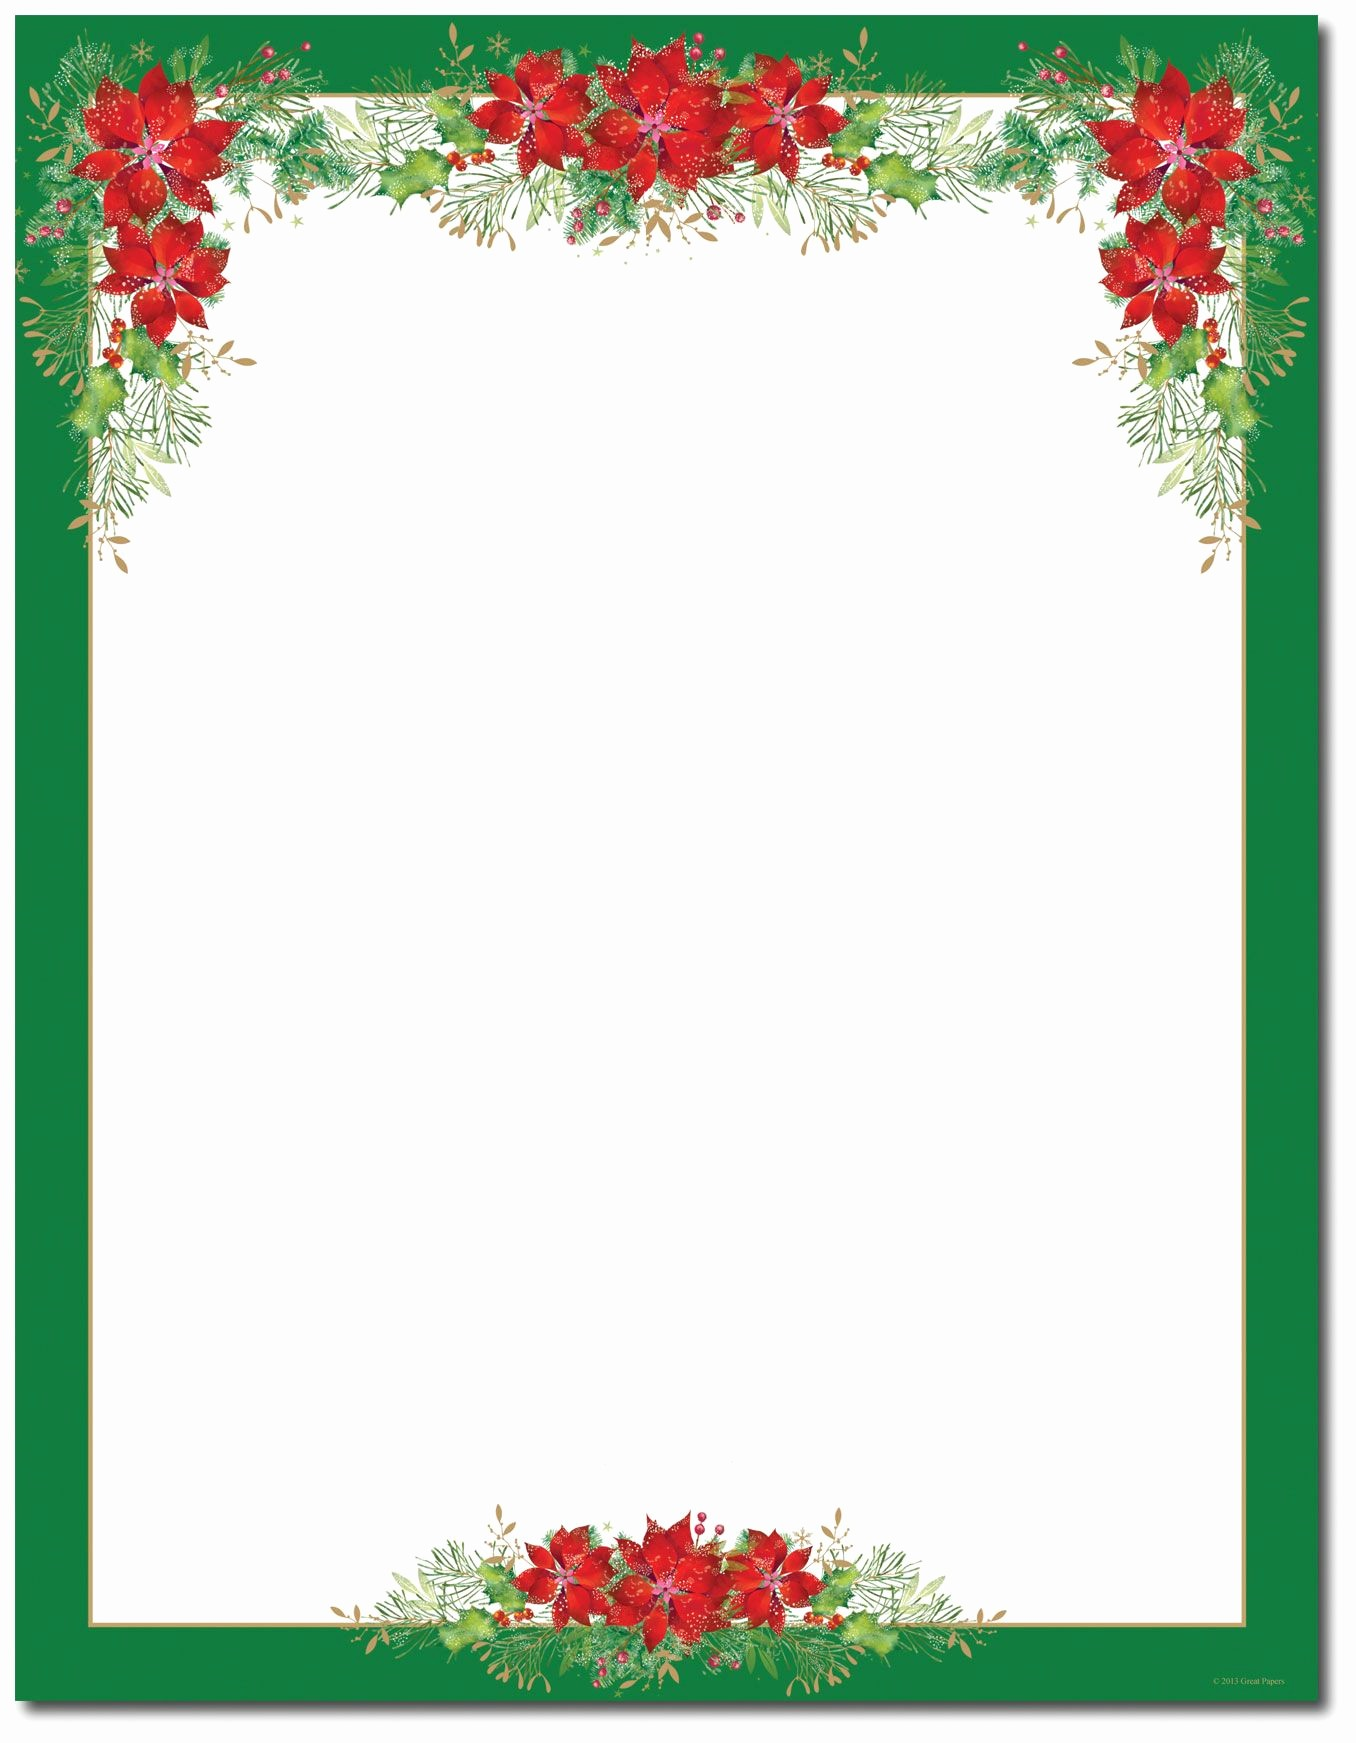 Holiday Paper Templates Free Download Beautiful Poinsettia Valance Letterhead Holiday Papers